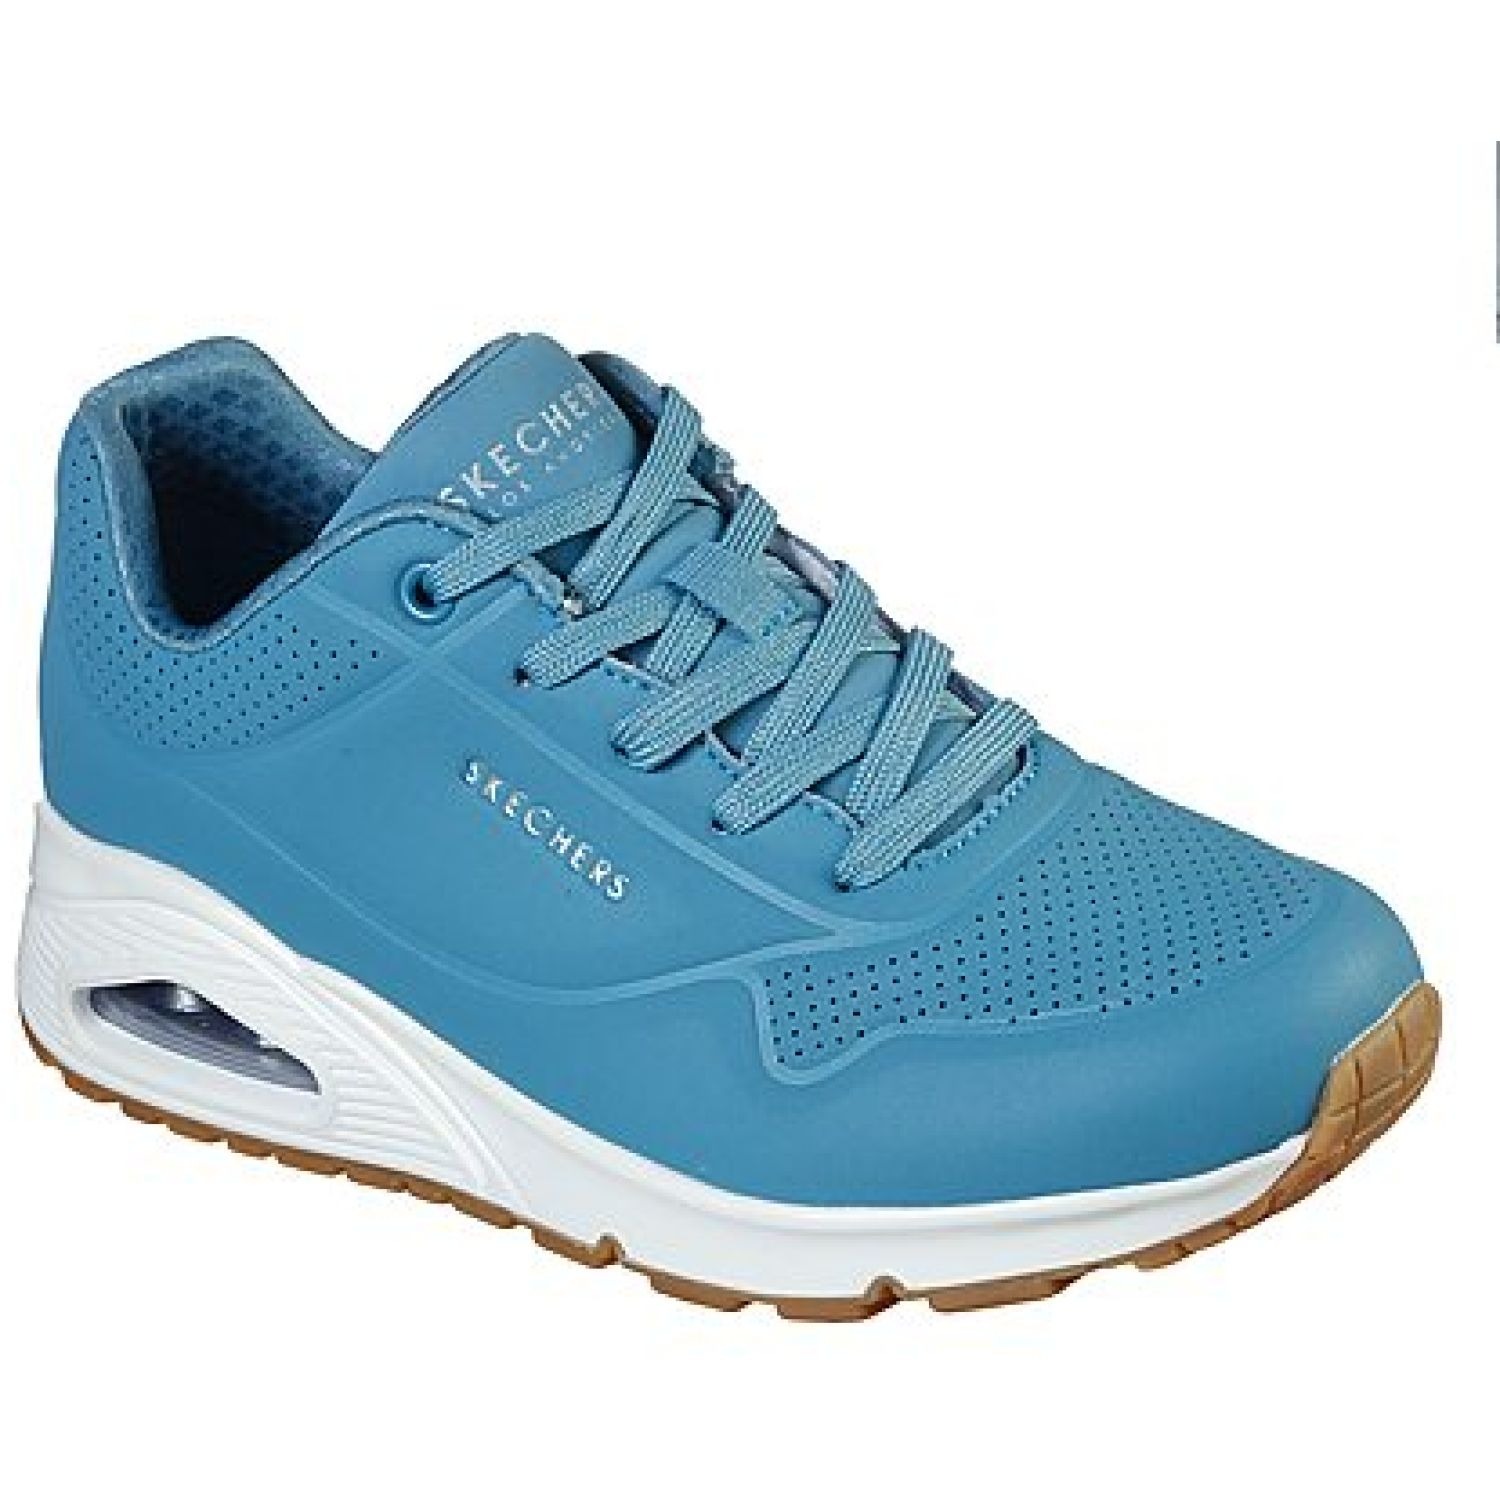 Skechers UNO Turquesa Walking